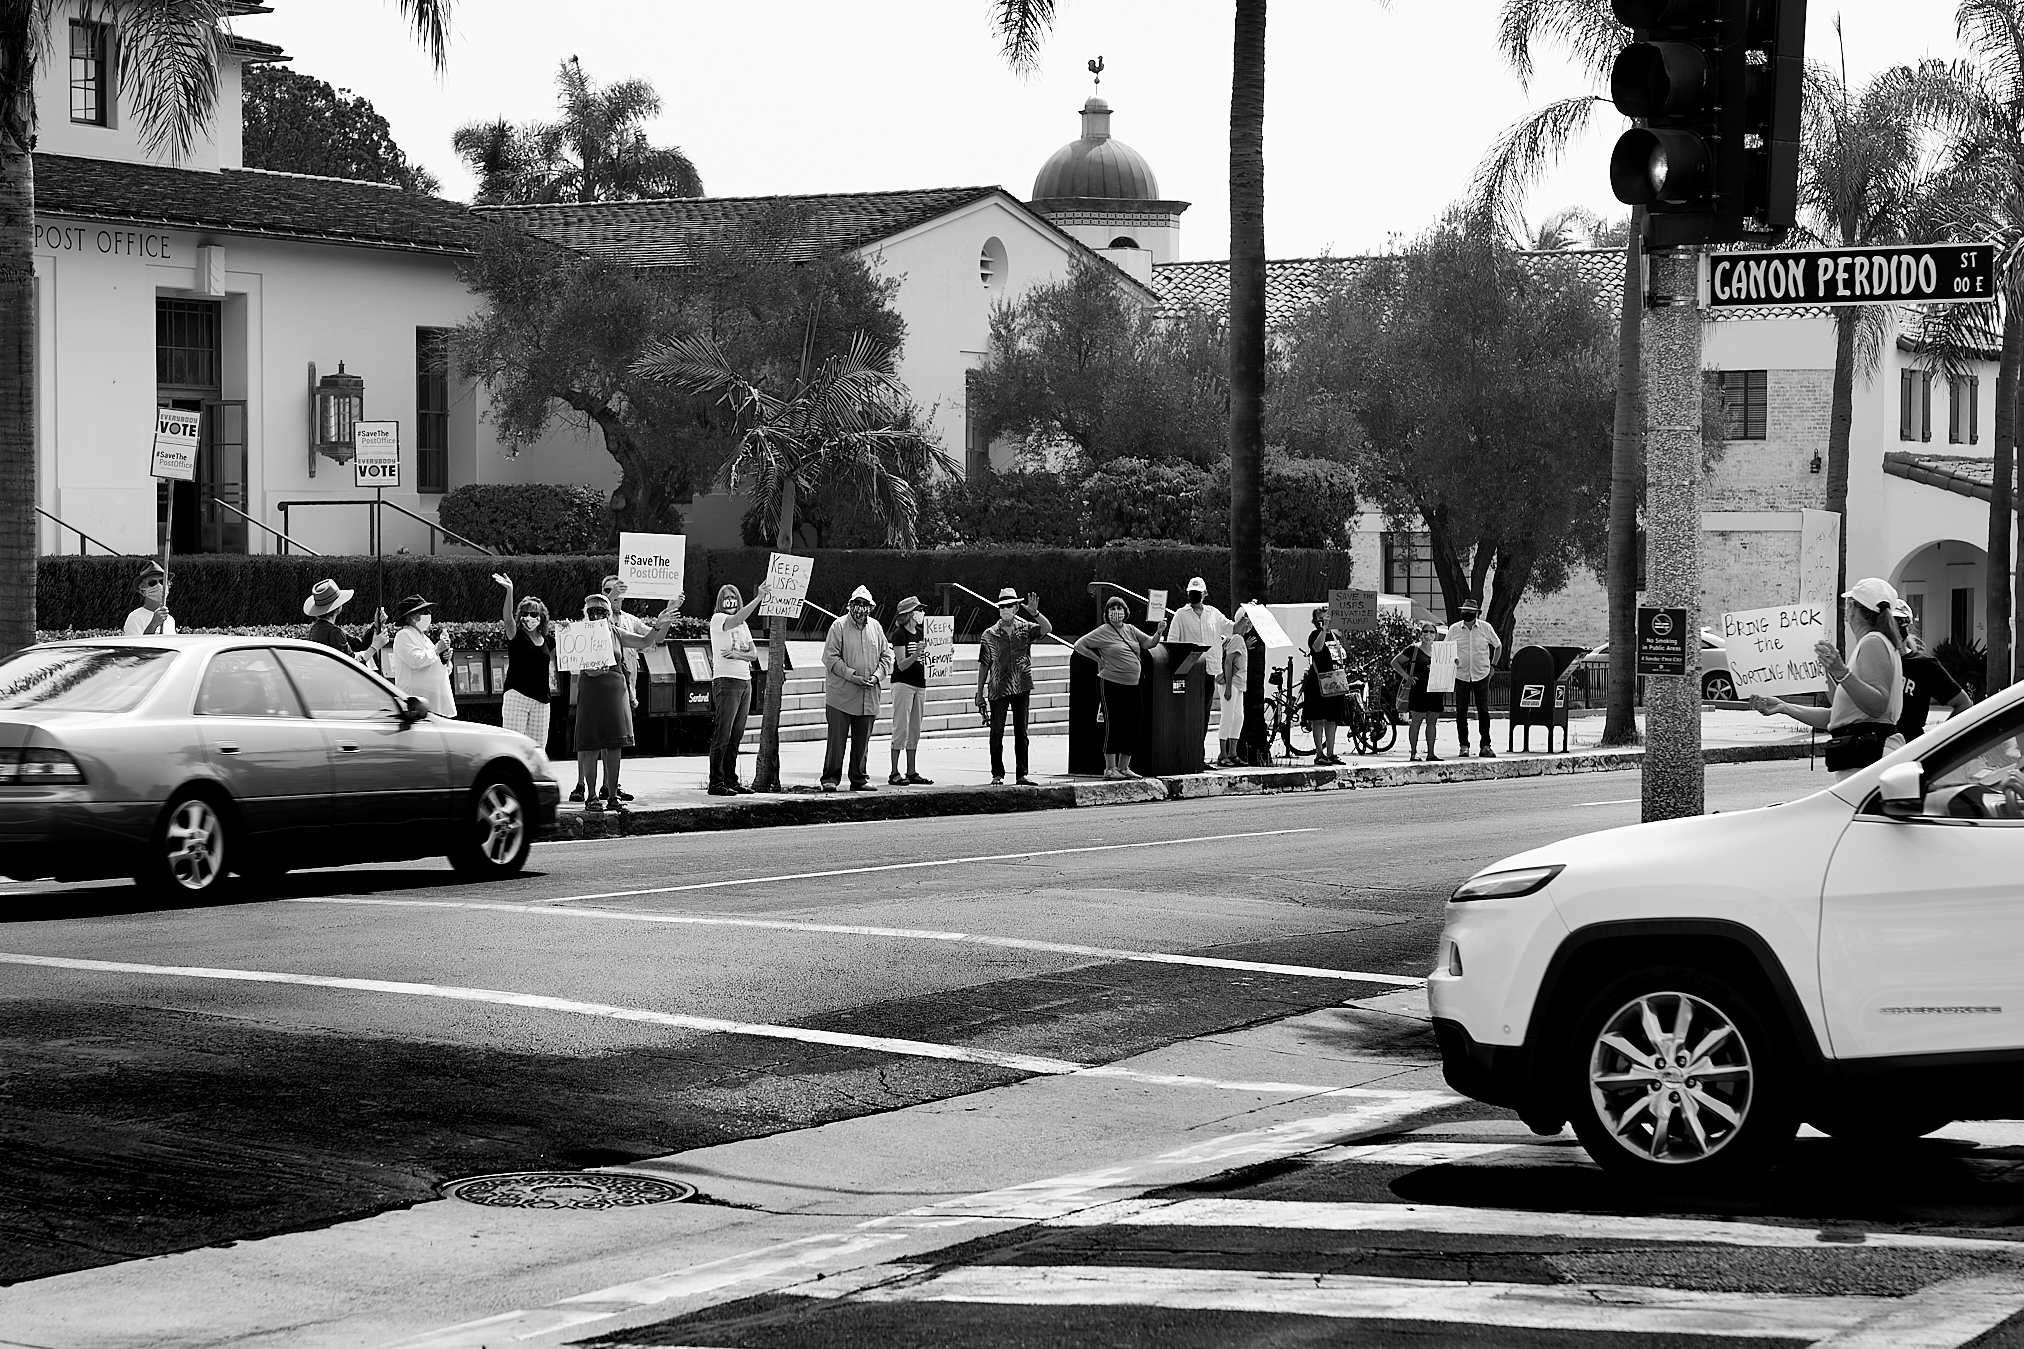 Save The Post Office Rally. politics, post office, protest, protest rally, #savethepostoffice, 2020 Presidential Election, postal service.